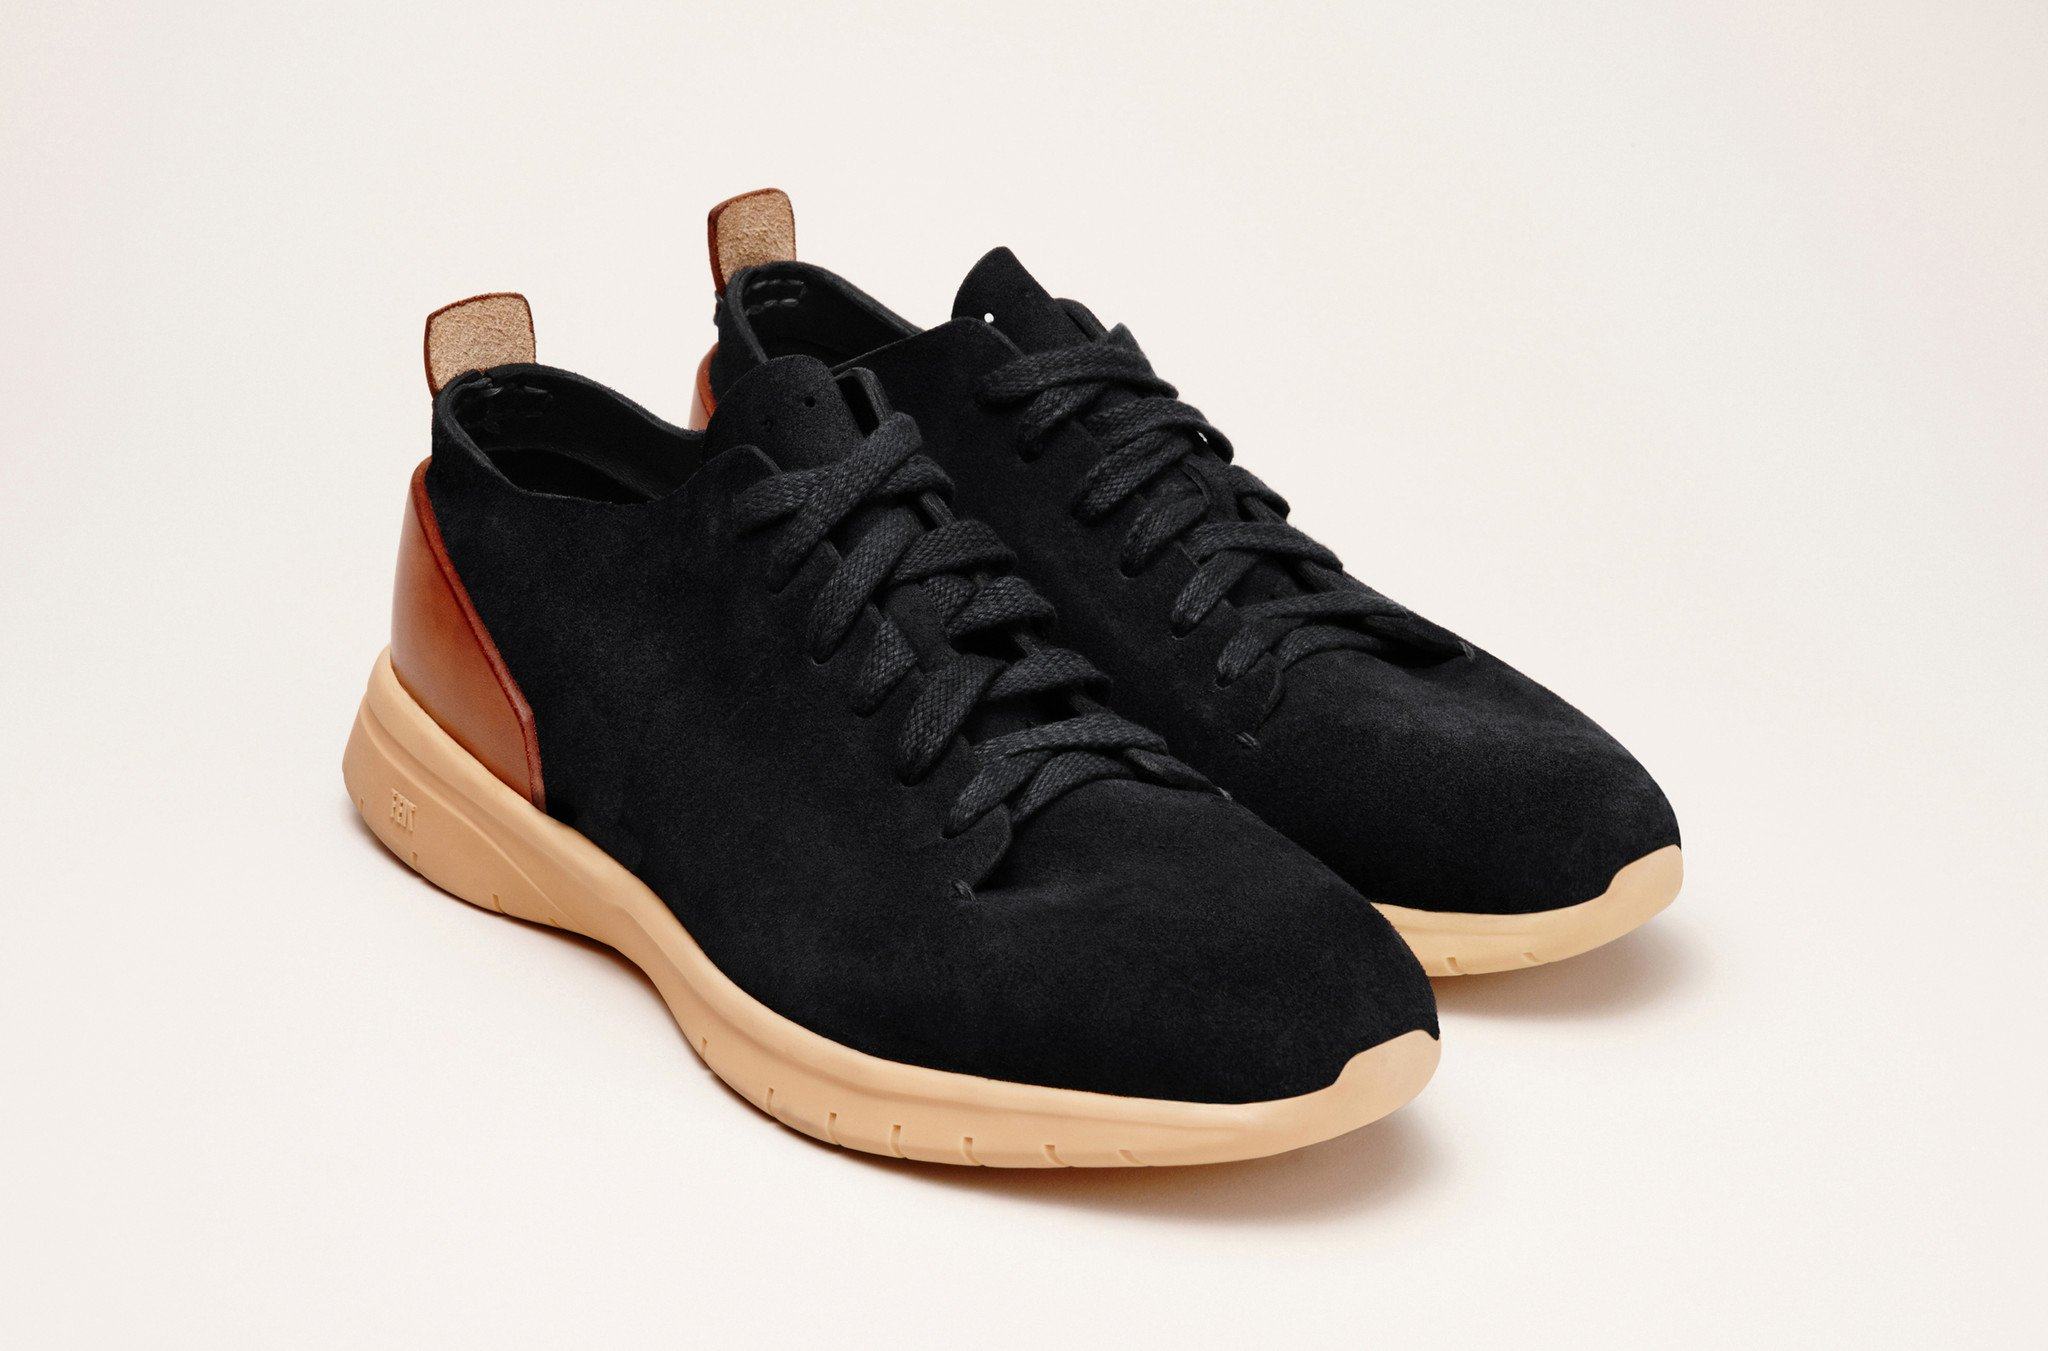 Completely Black Shoes